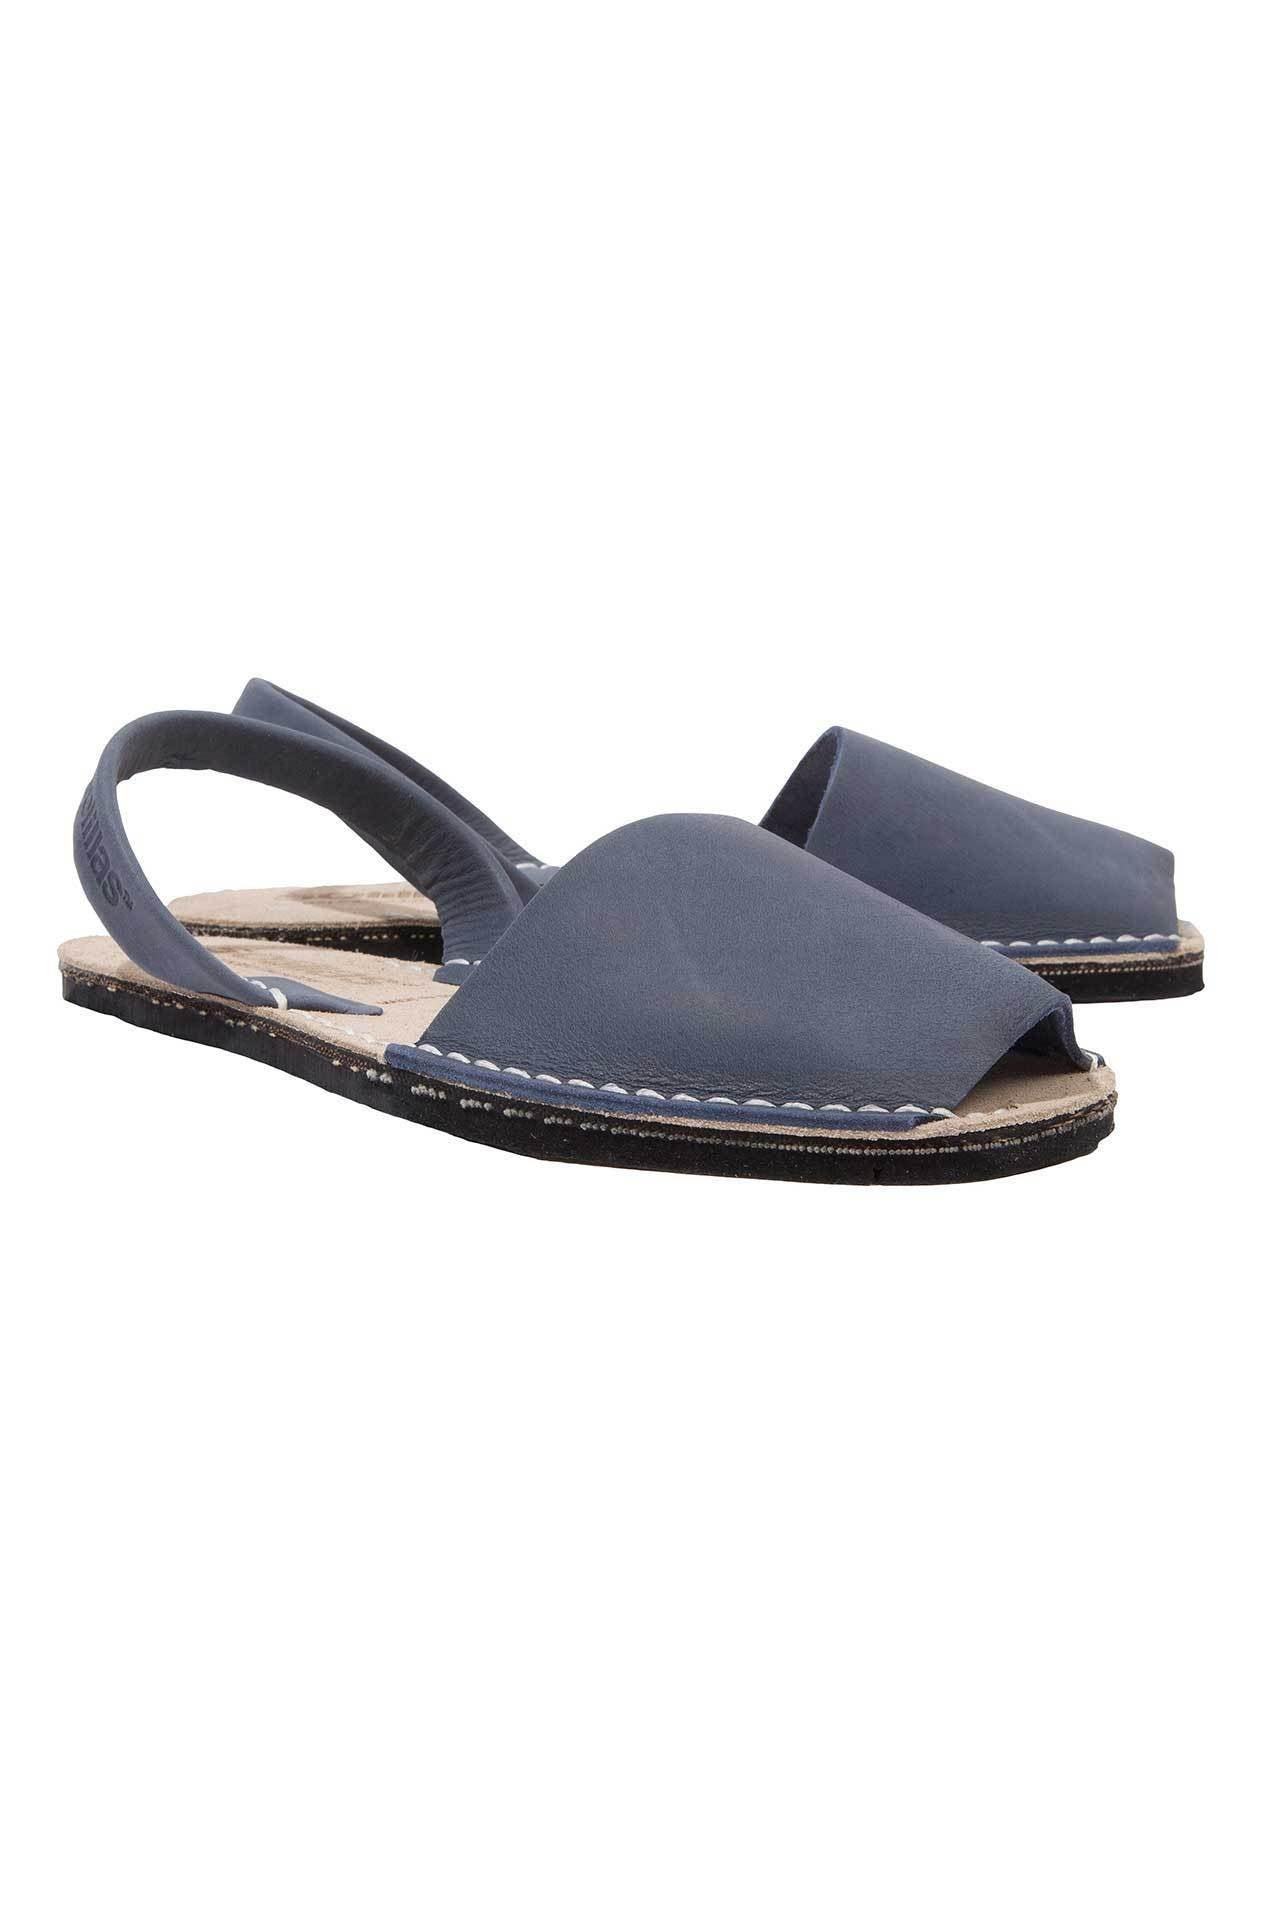 Marina - Men's Heritage Leather Sandals